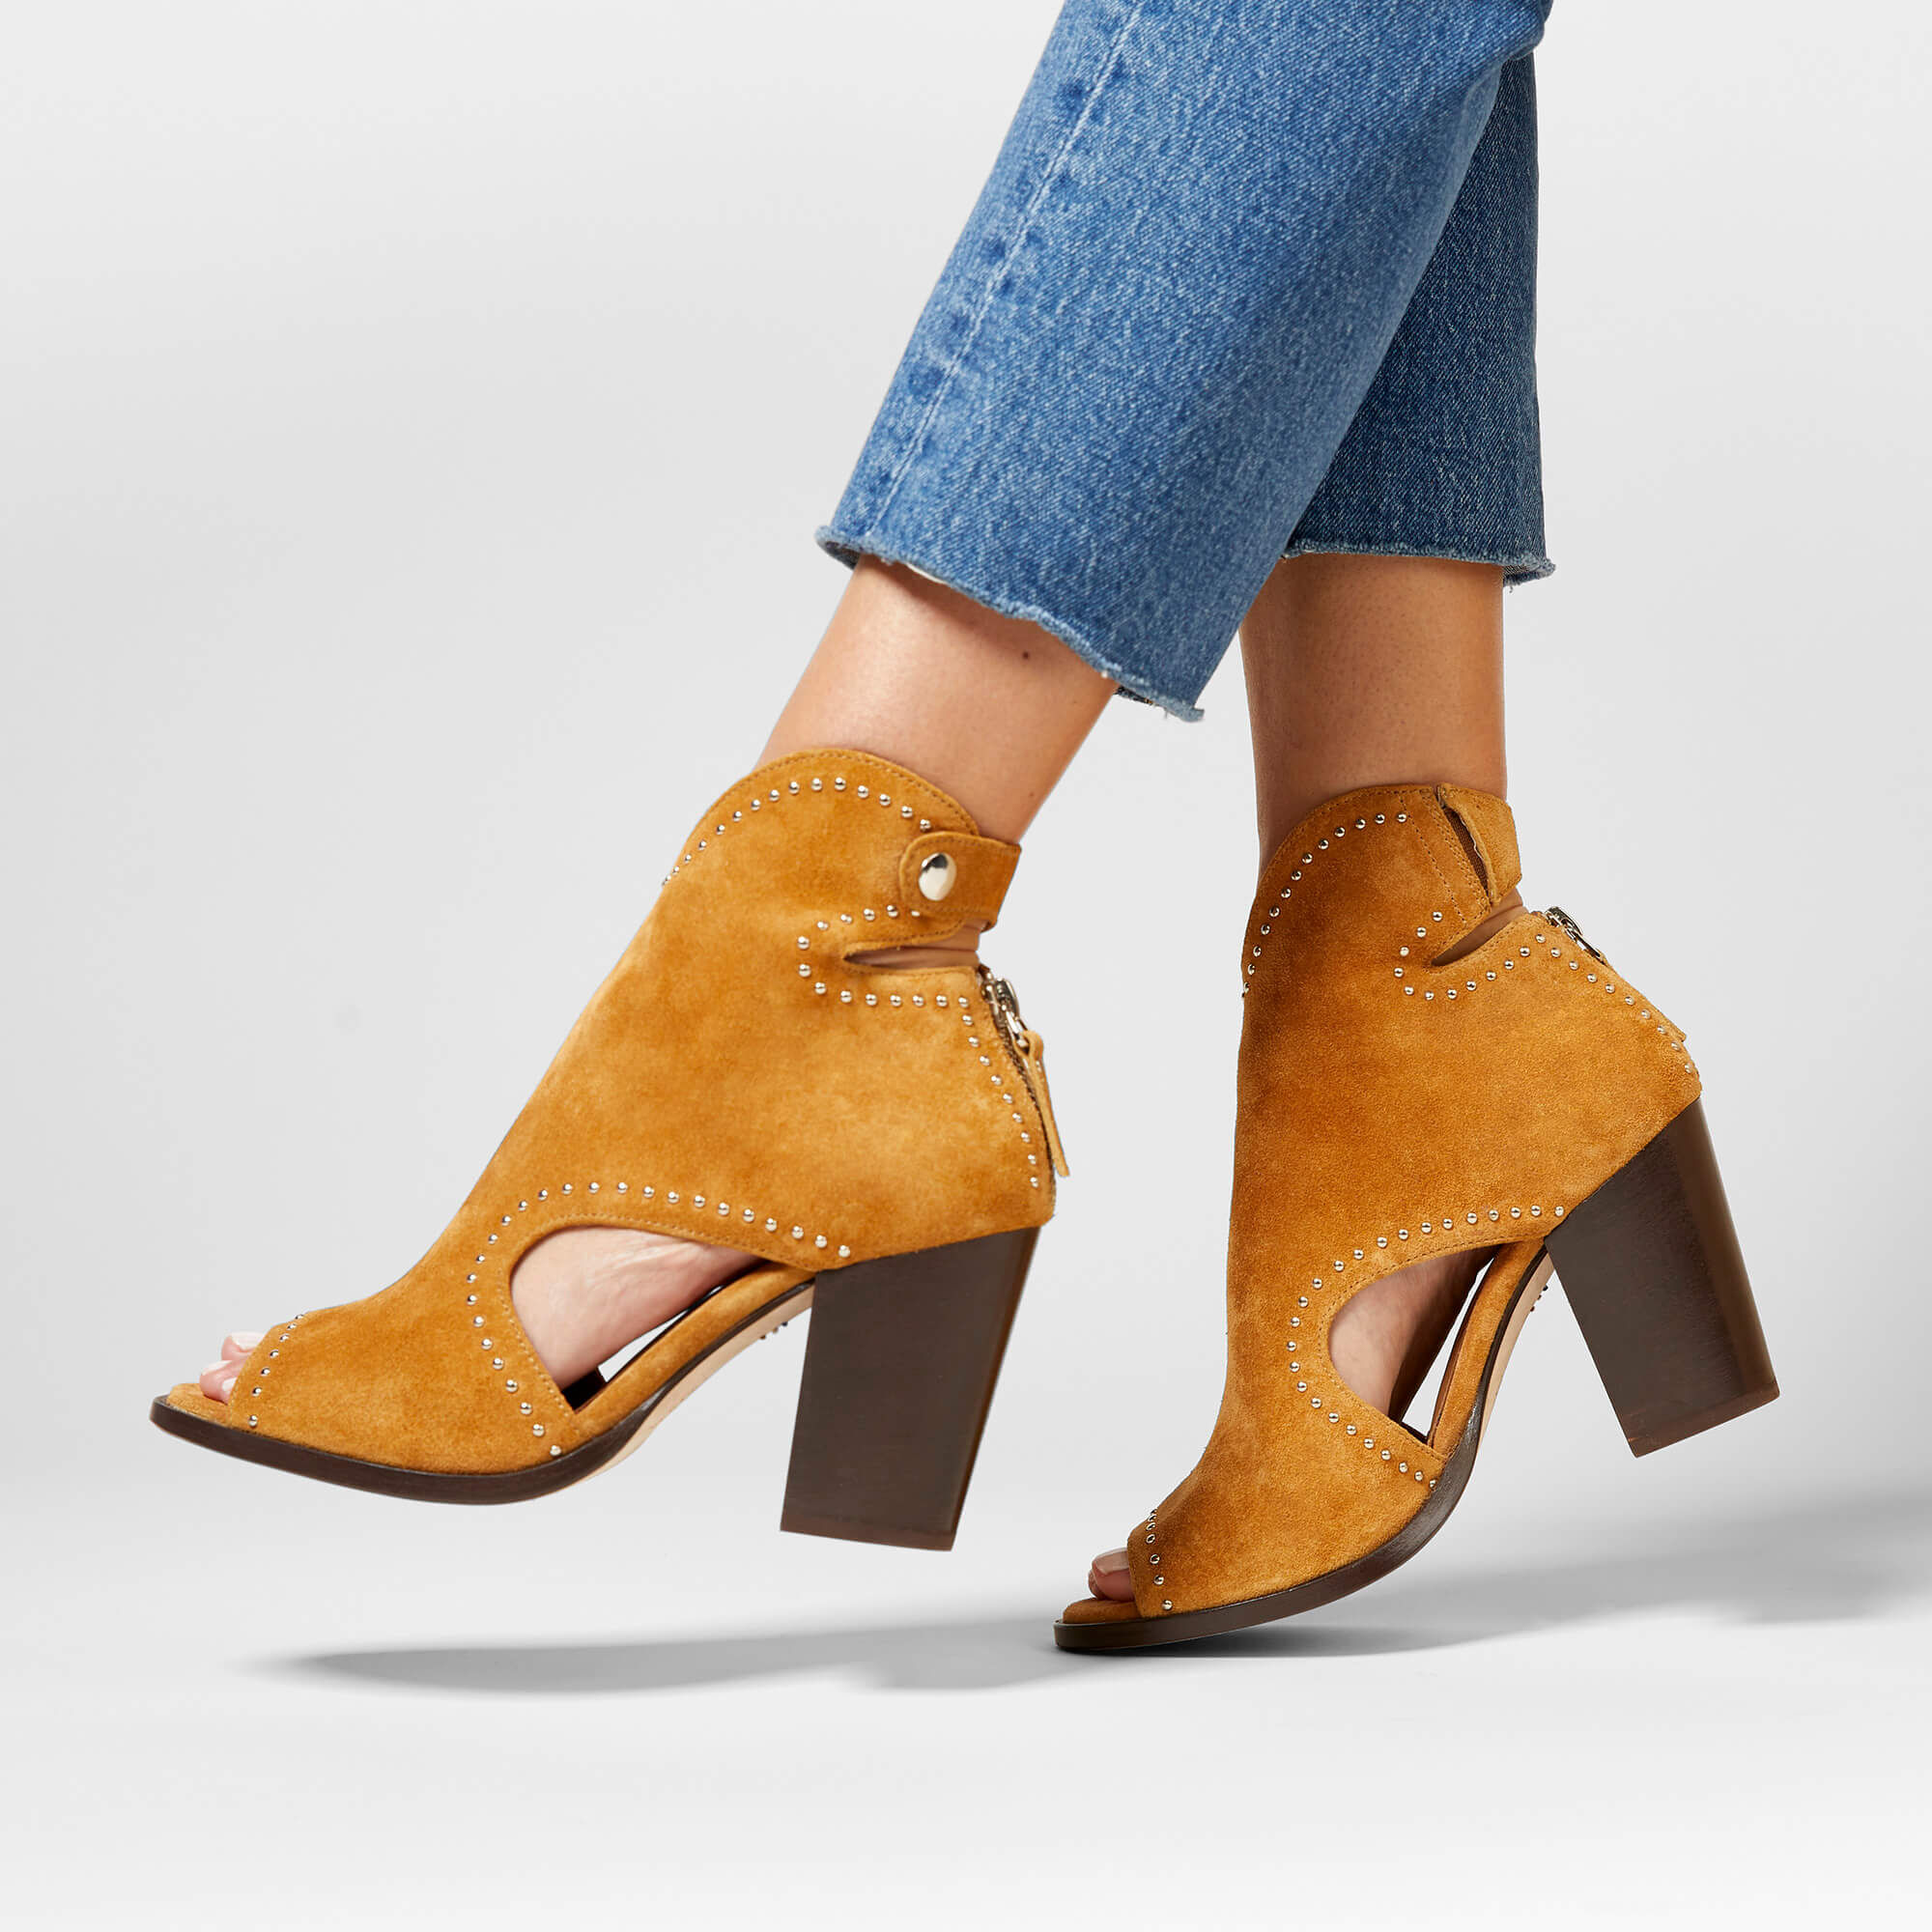 Women's Sydney Booties in Camel Suede Leather by Ariat Two24